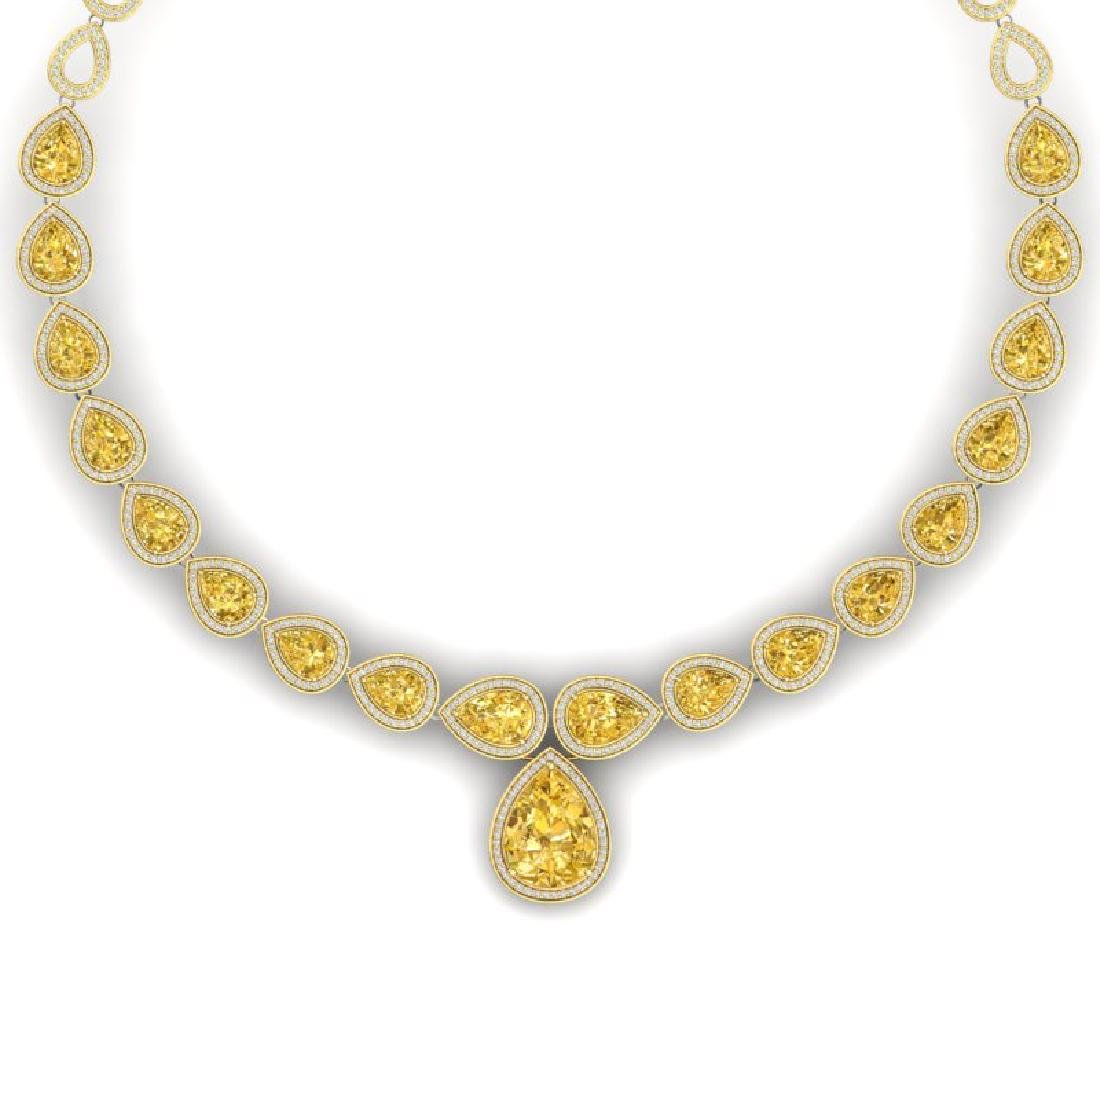 48.24 CTW Royalty Canary Citrine & VS Diamond Necklace